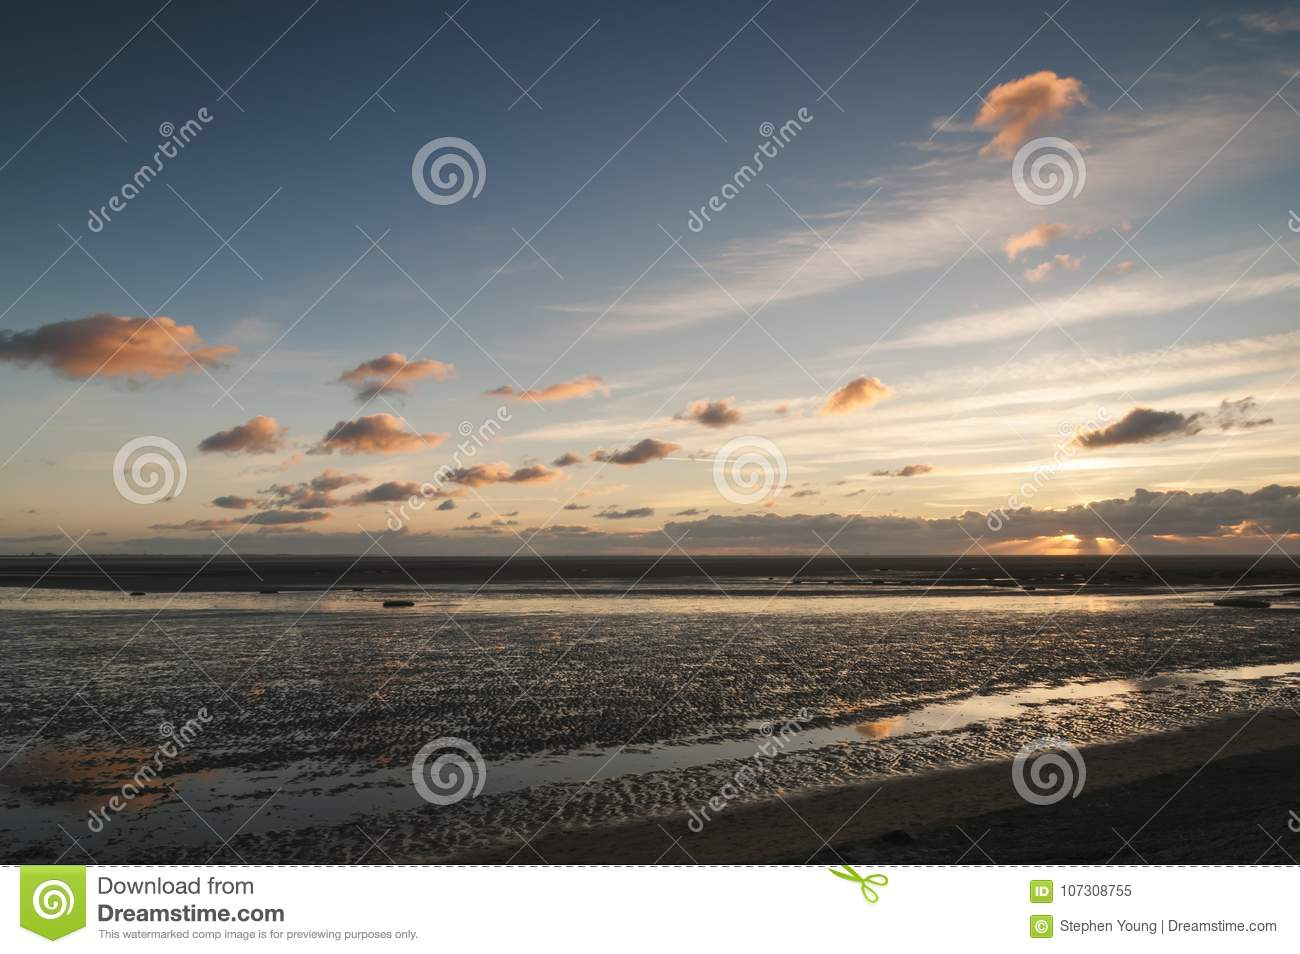 Wet Sands and Sunset